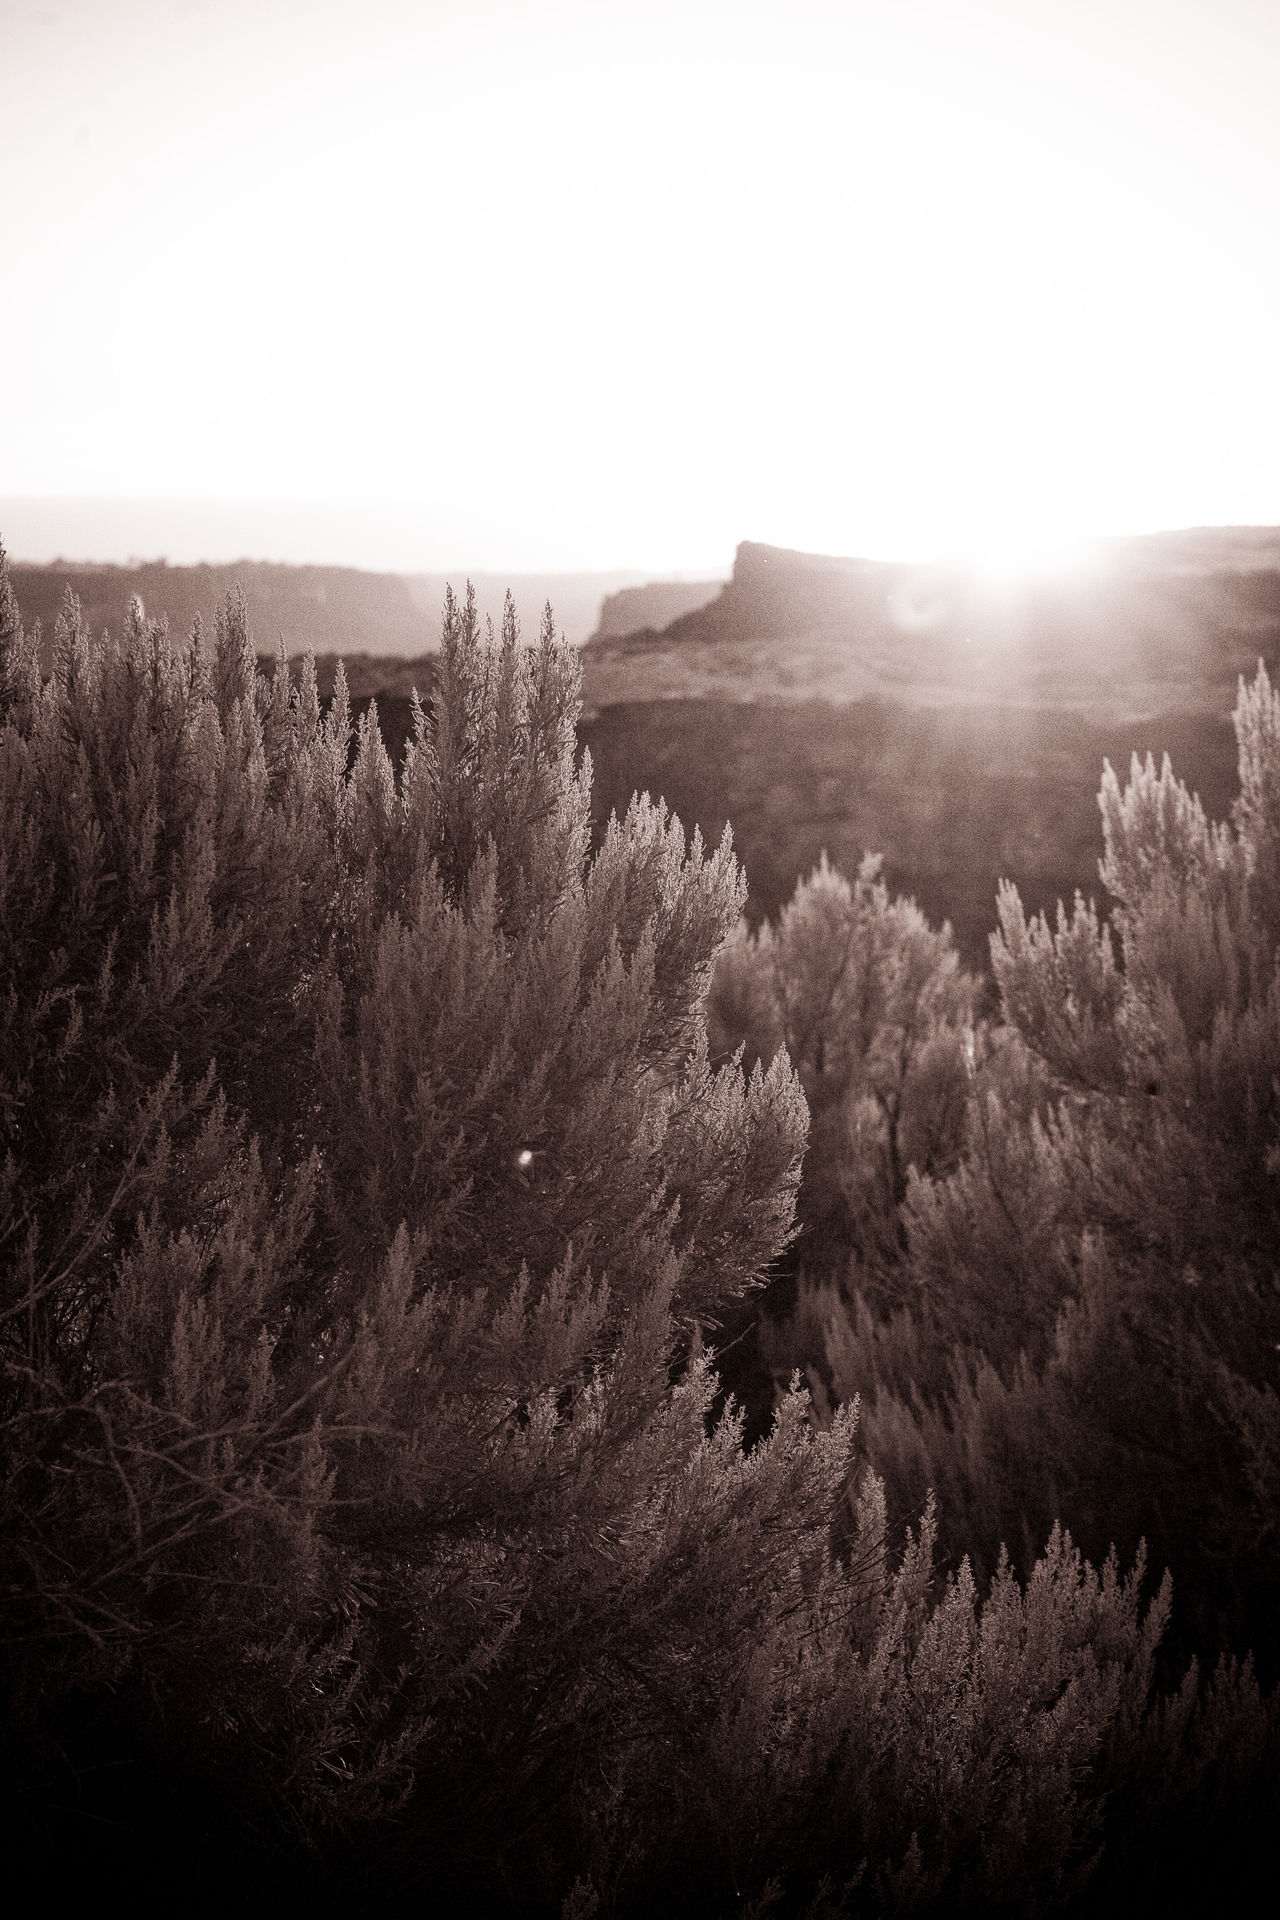 Back Backlight Backlit Sunset Beauty In Nature High Desert Idaho Landscape Monochromatic Monochrome Nature Outdoors Plant Plants Plateau Sage Scenics Sepia Sky Snake River Snake River Valley Sunset Tranquil Scene Tranquility Twin Falls Twin Falls, Idaho